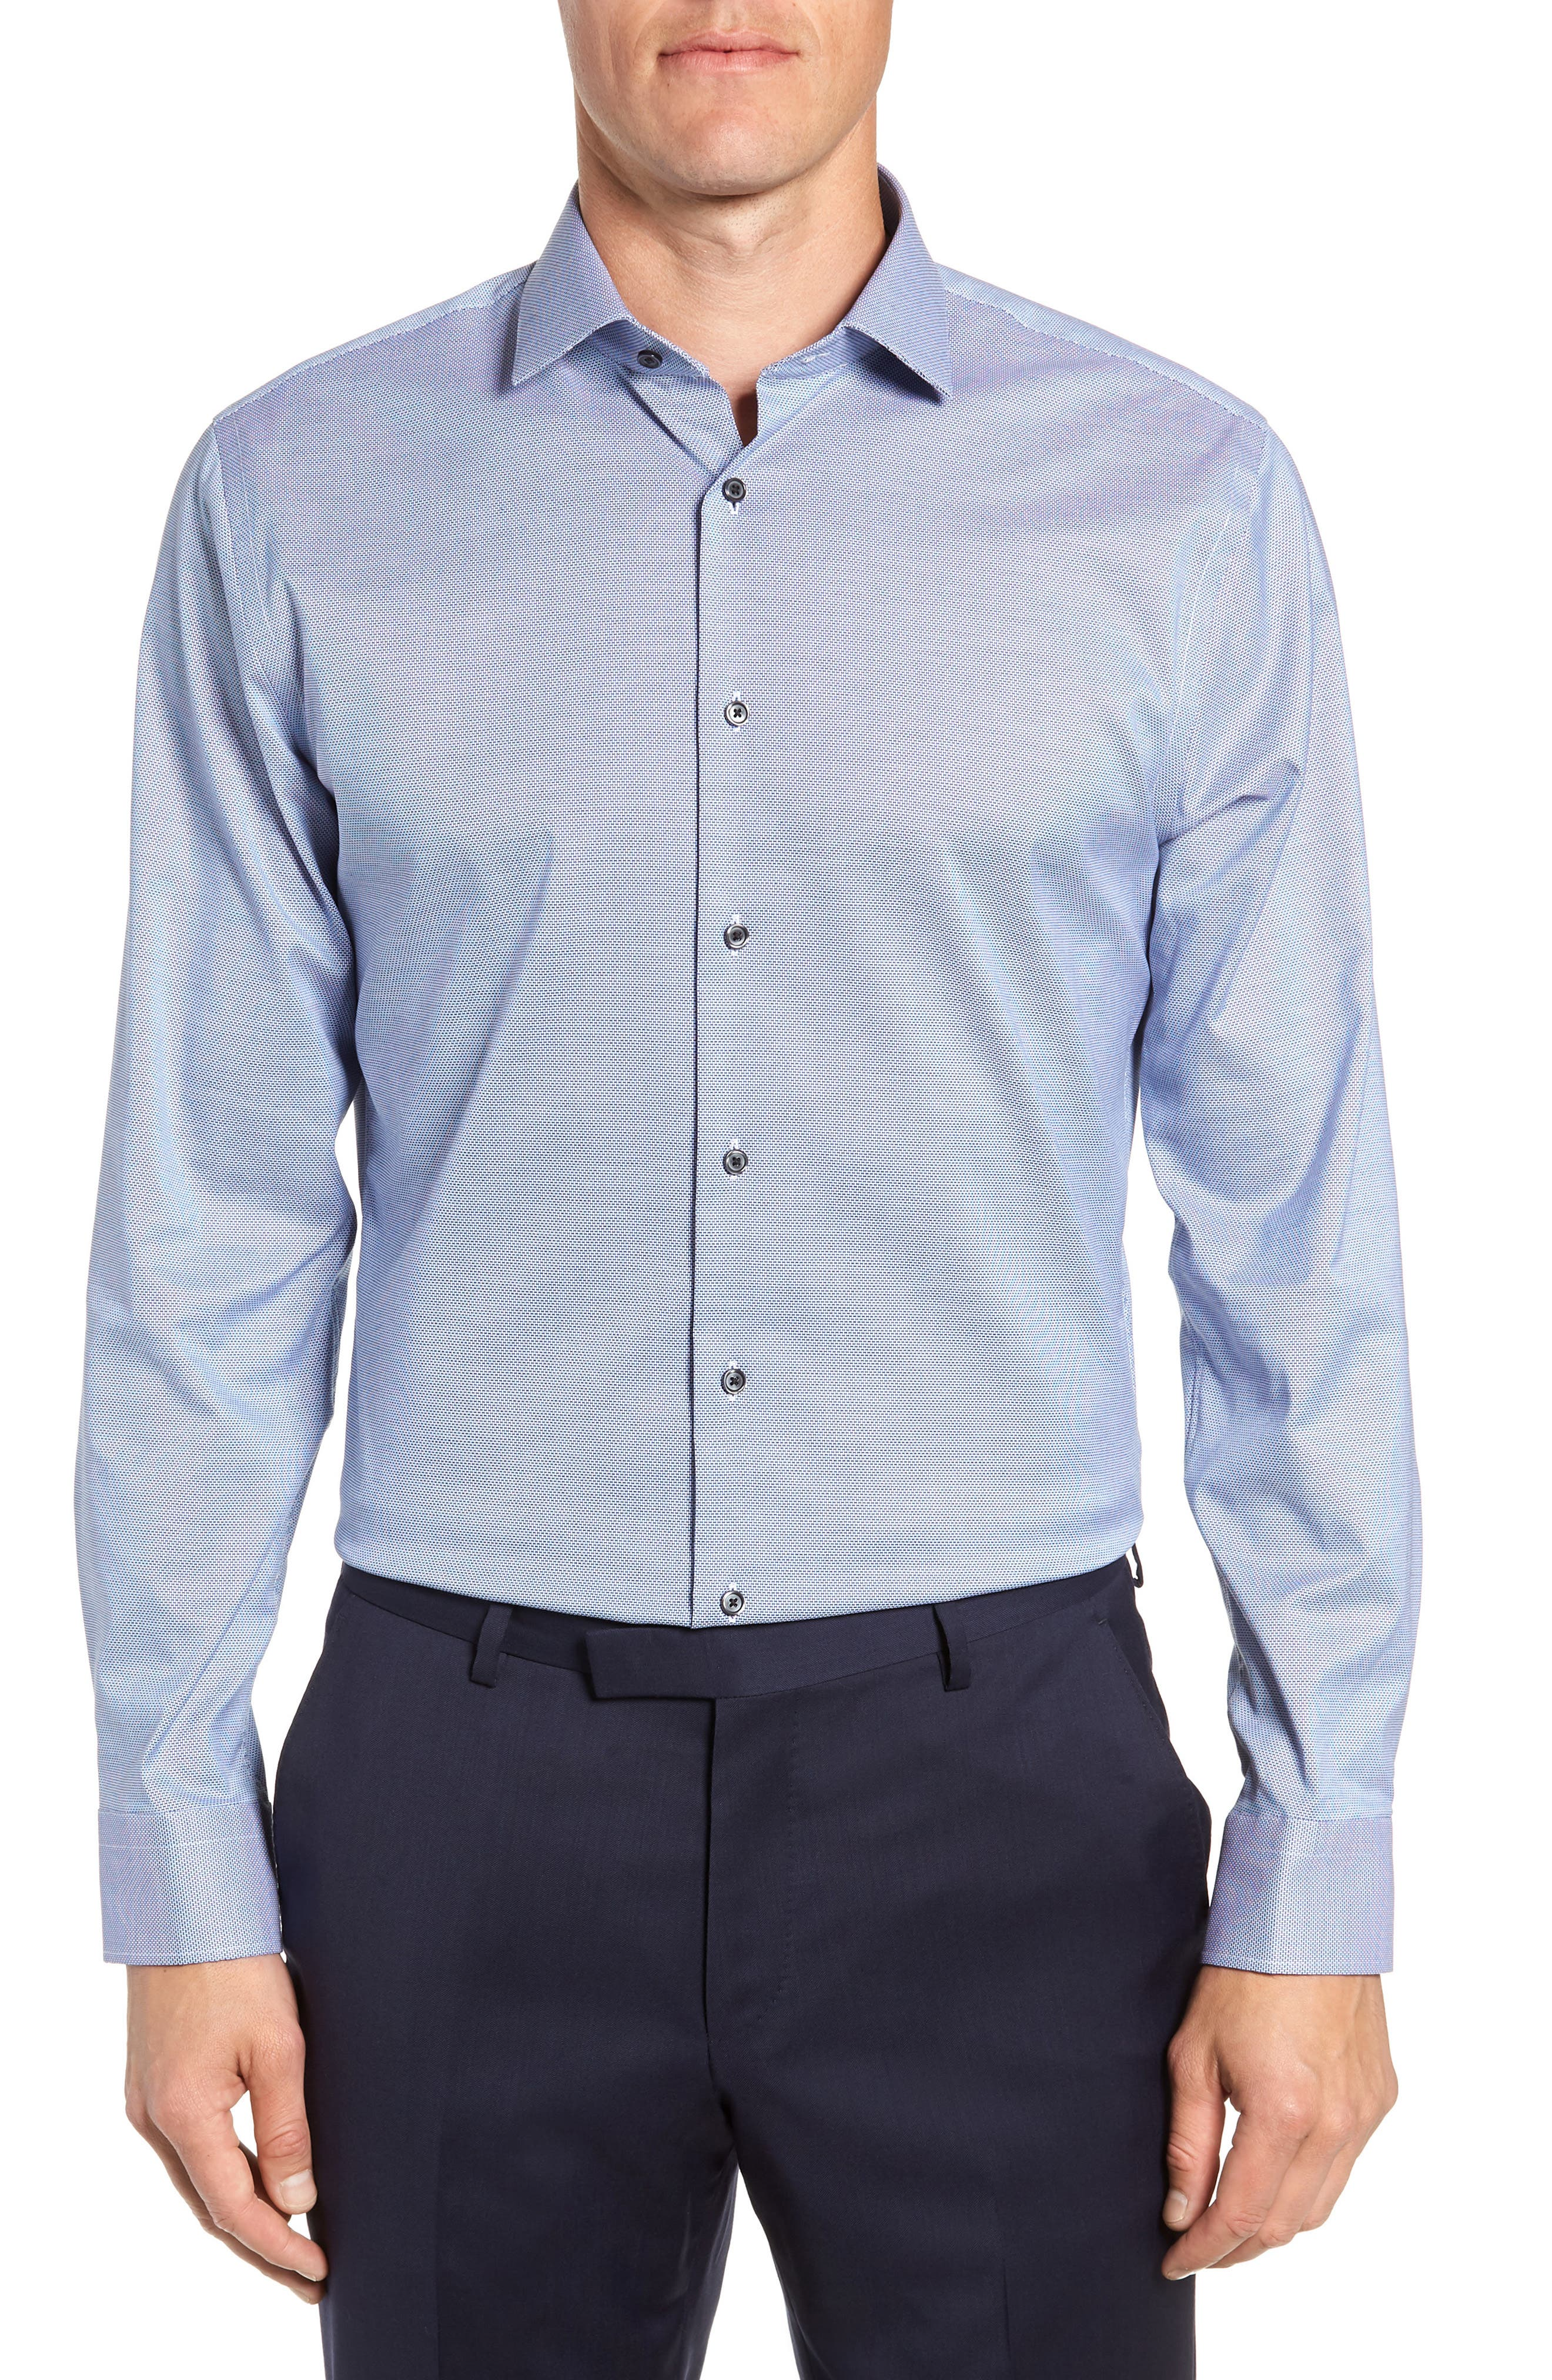 Image of CALIBRATE Trim Fit Stretch No-Iron Solid Dress Shirt